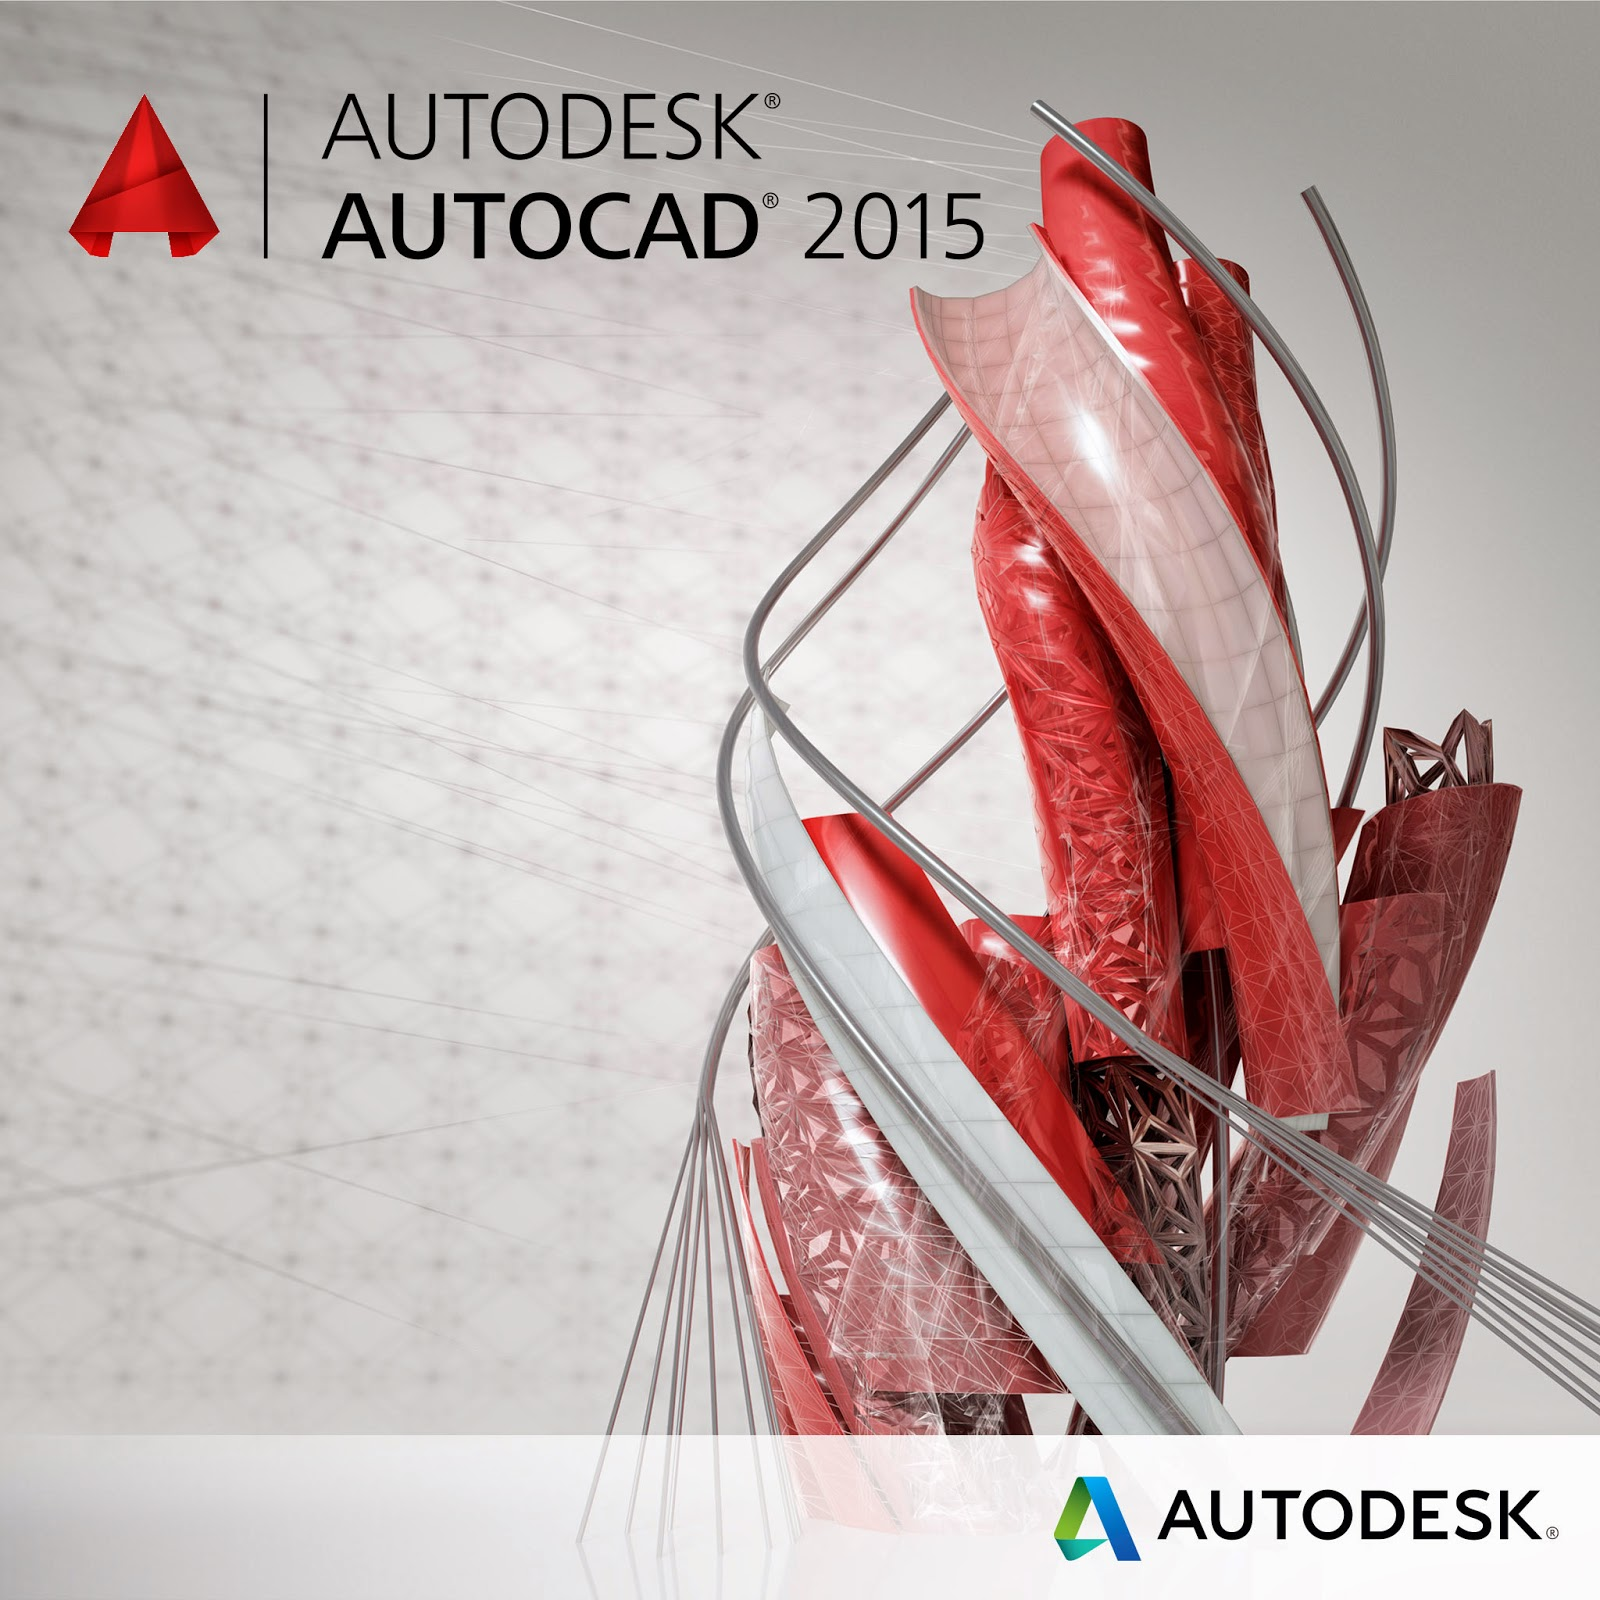 Autocad was used for rendering the remaining images - An Overview Of The Features Tools And Changes In Autocad 2015